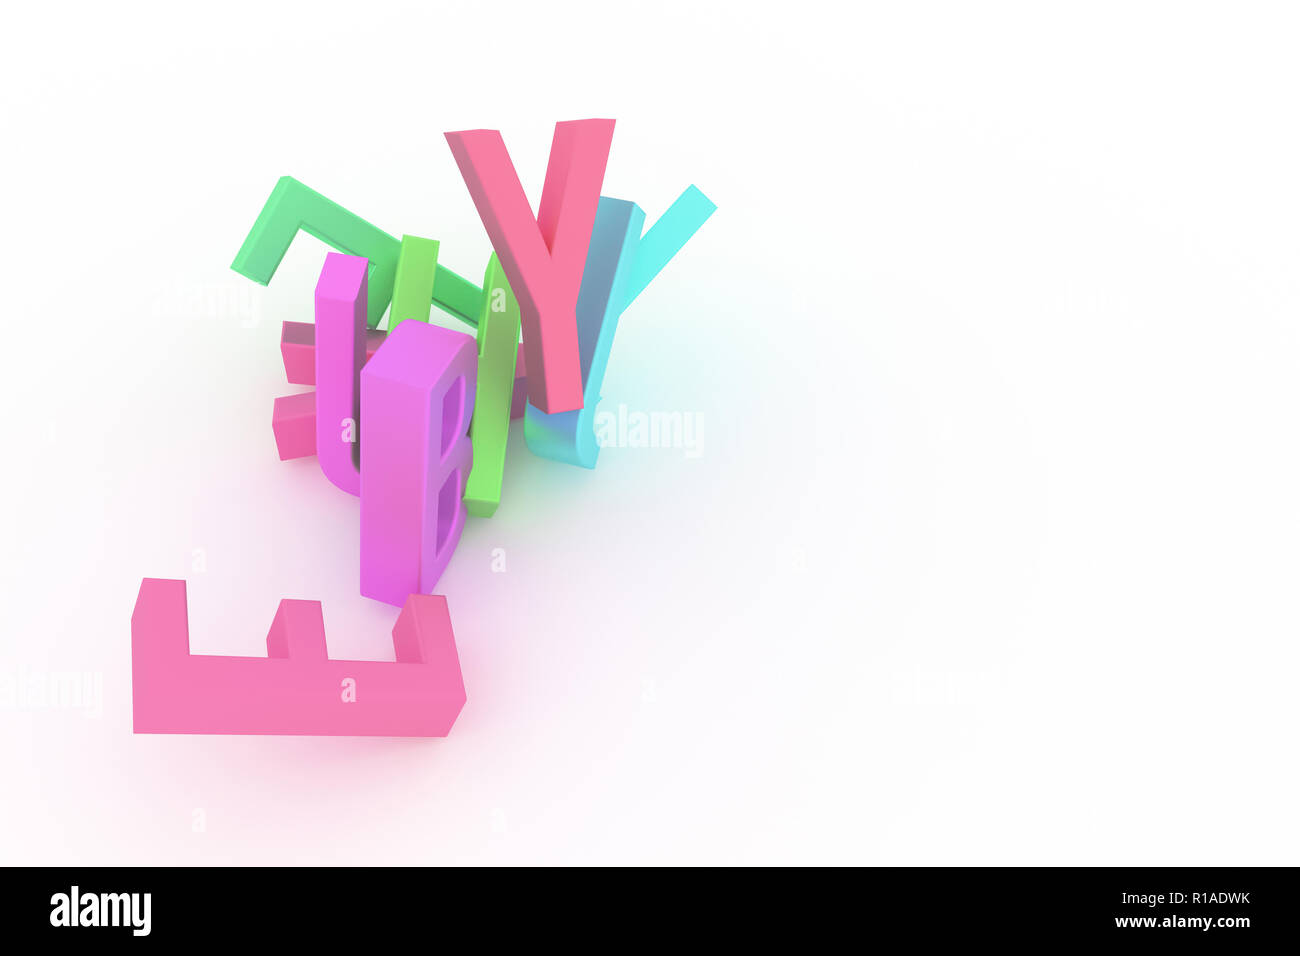 Letter of ABC, alphabetic character. Good for web page, wallpaper, graphic design, catalog, texture or background. Colorful 3D rendering. Mess, shape, - Stock Image